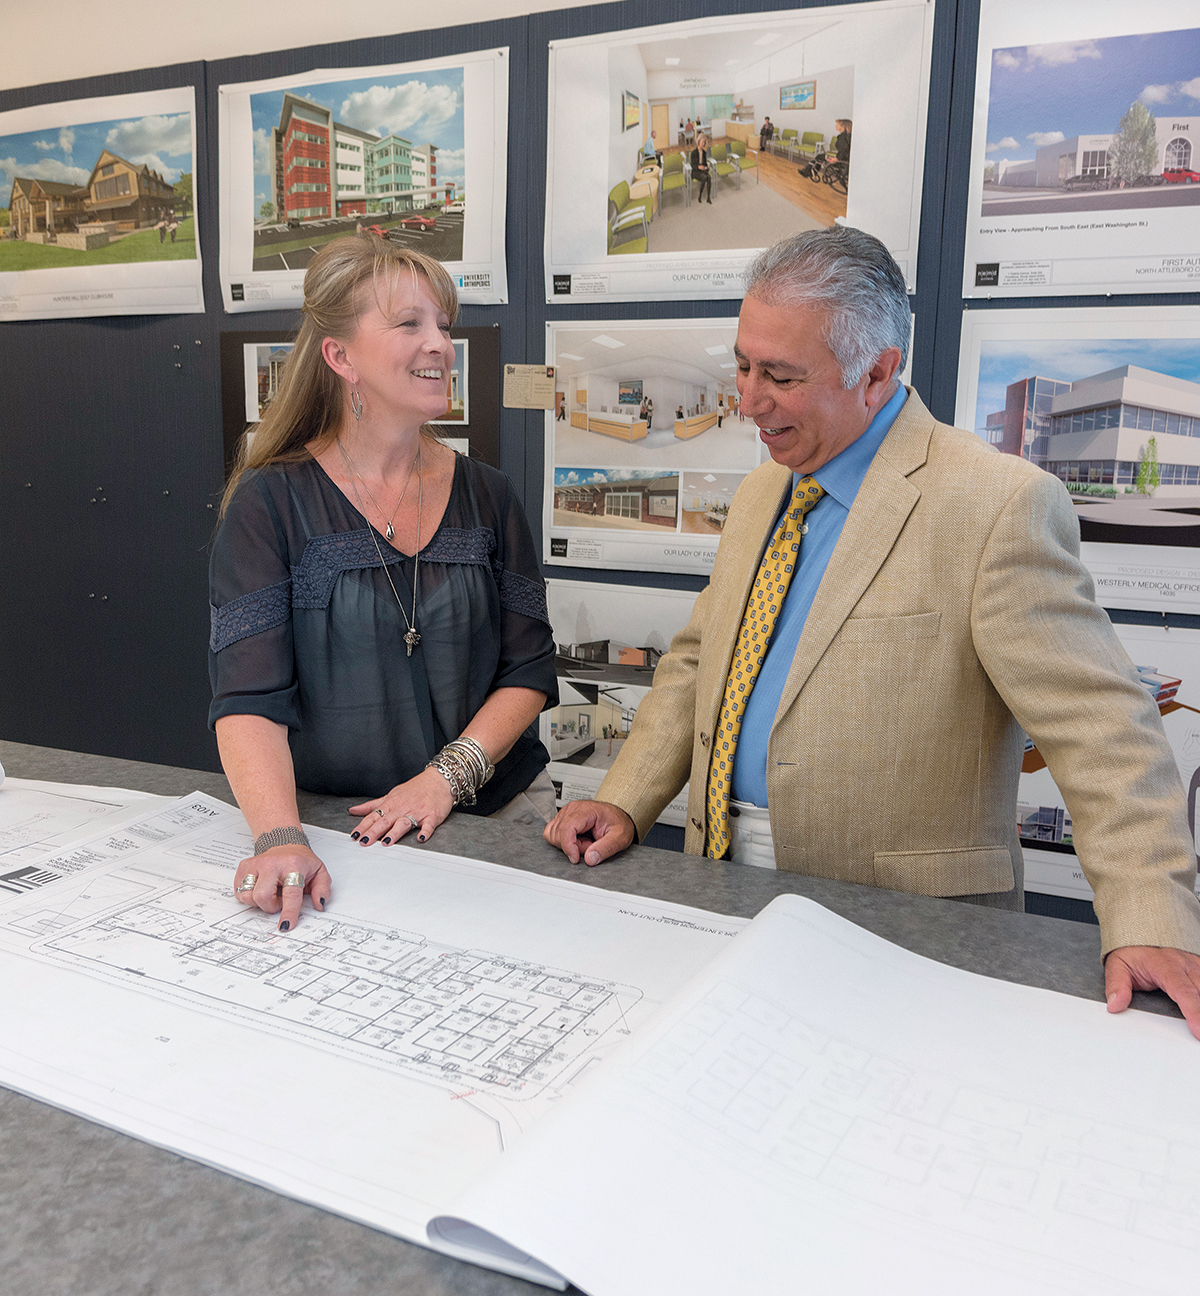 SEEKING WORK PRODUCT RESPECT: Jennifer Space, an associate at n|e|m|d architects inc., and president of the Rhode Island branch of the ­American Institute of Architects, looks over some plans with n|e|m|d architects President Mehdi Khosrovani. Space believes local firms are bypassed too often for high-profile work. / PBN PHOTO/MICHAEL SALERNO